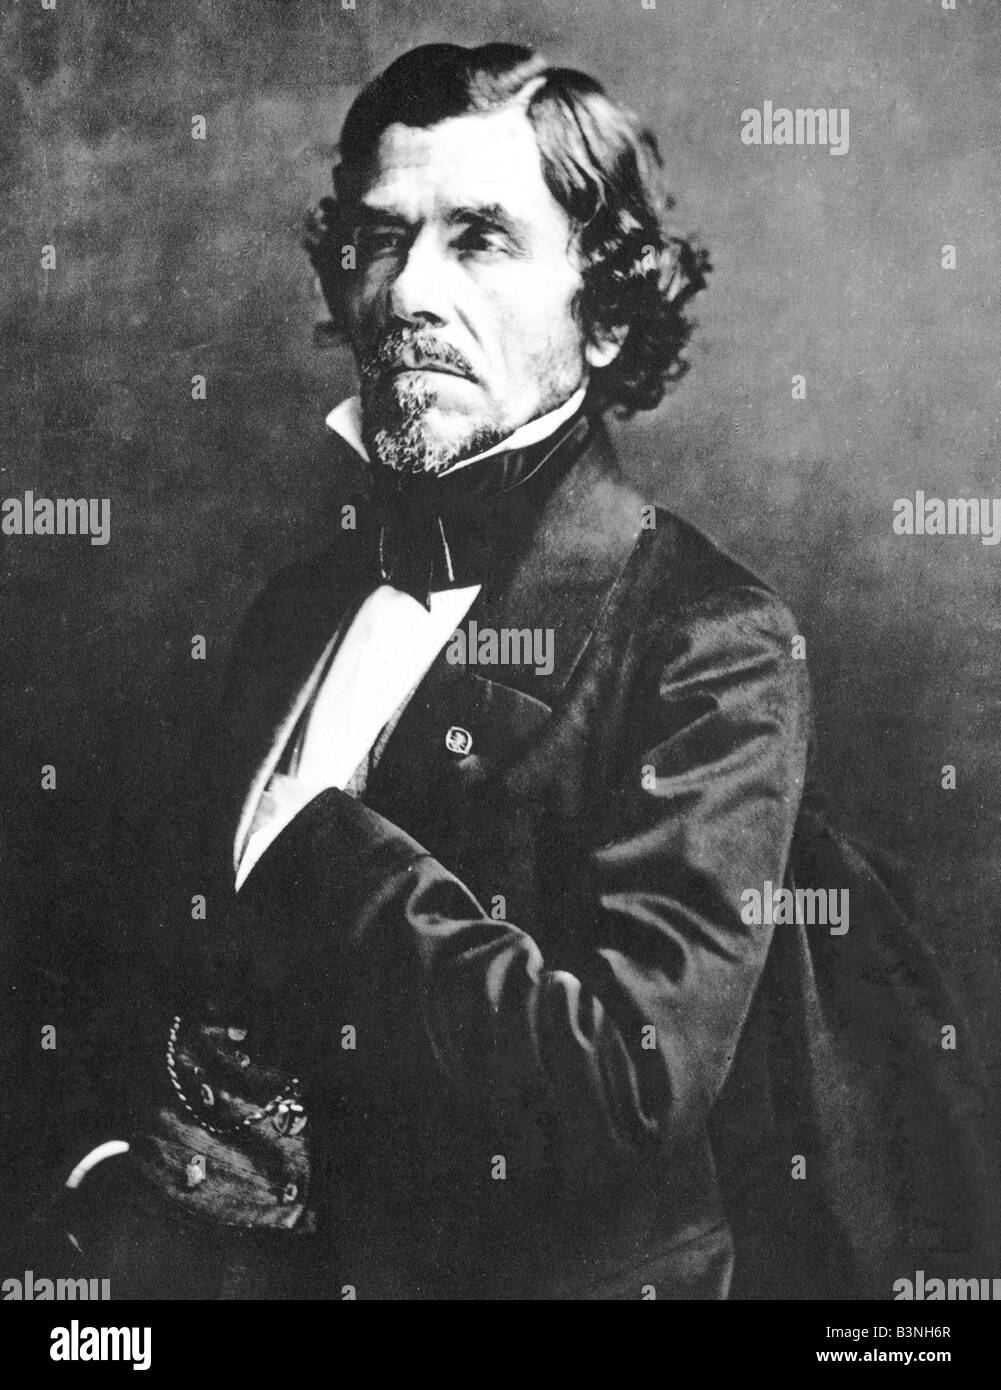 EUGENE DELACROIX  French painter 1798 to 1863 seen here in 1858 Stock Photo